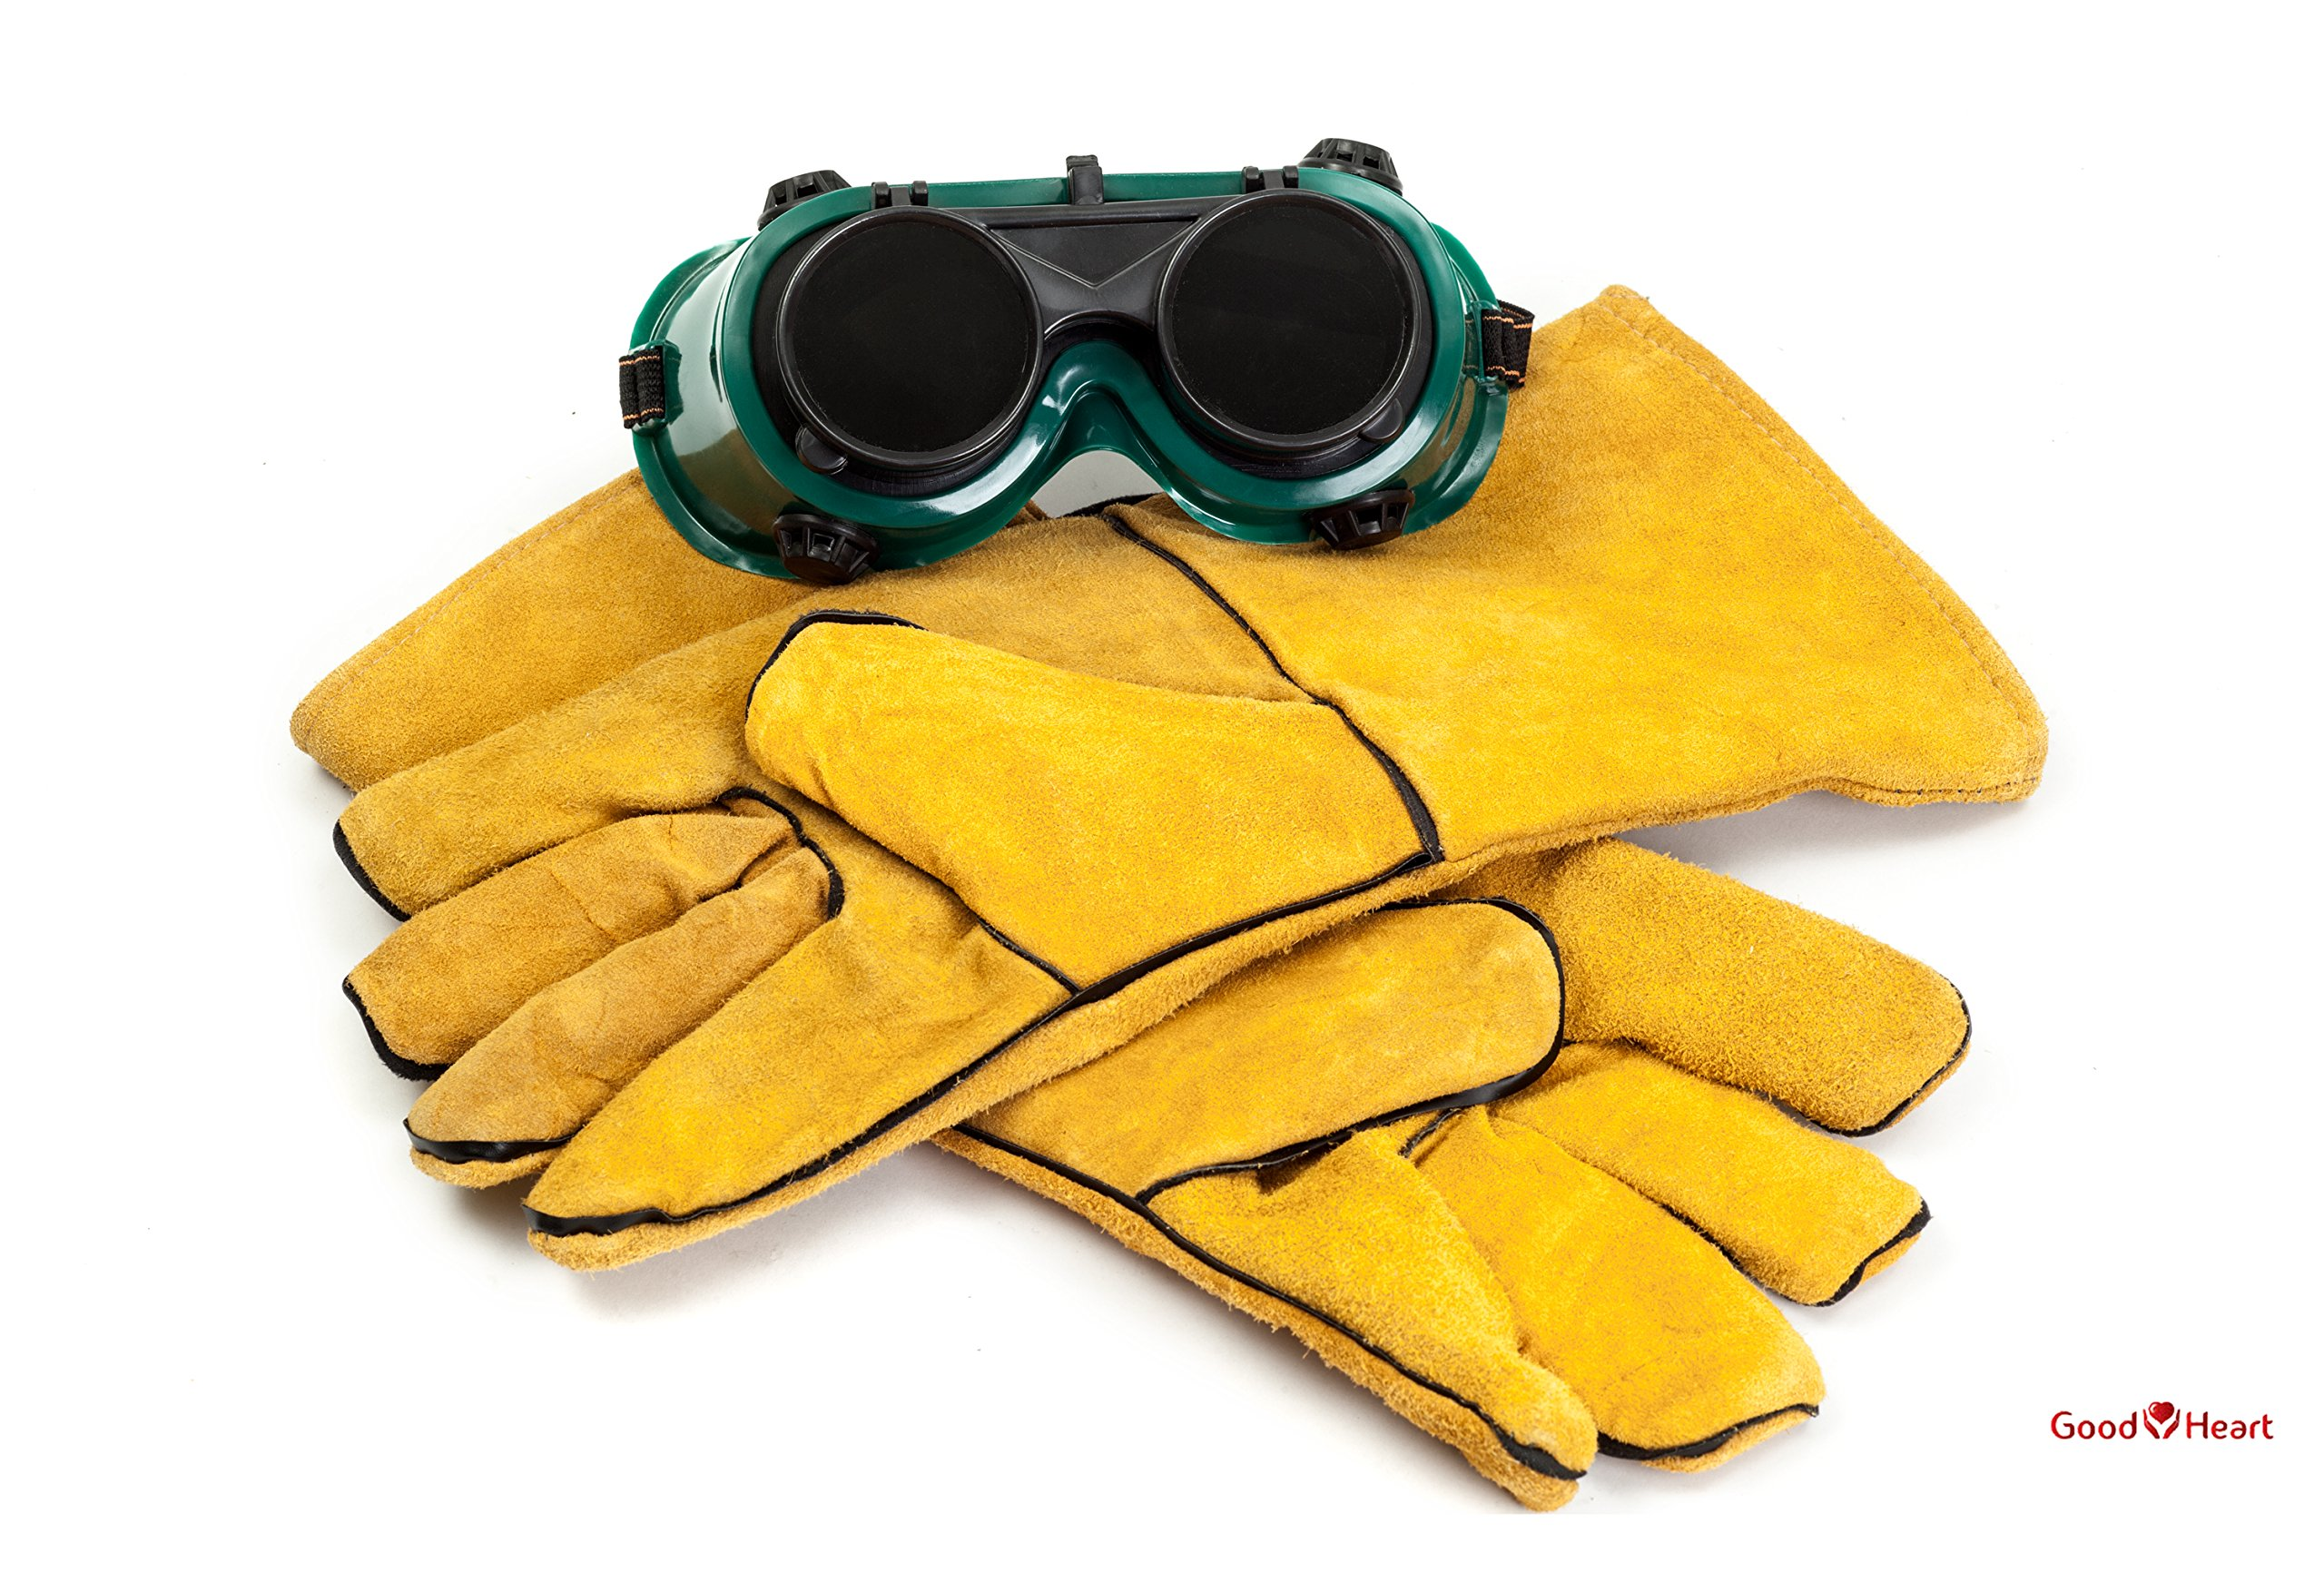 Cowhide Leather Welding Gloves With FREE Bonus Pair of Welding Goggles for Ultimate Set. Extreme Heat Resistant, Perfect For Tig Welders, Mig, and Other Industrial Work. Convenient Flip-Up Goggles